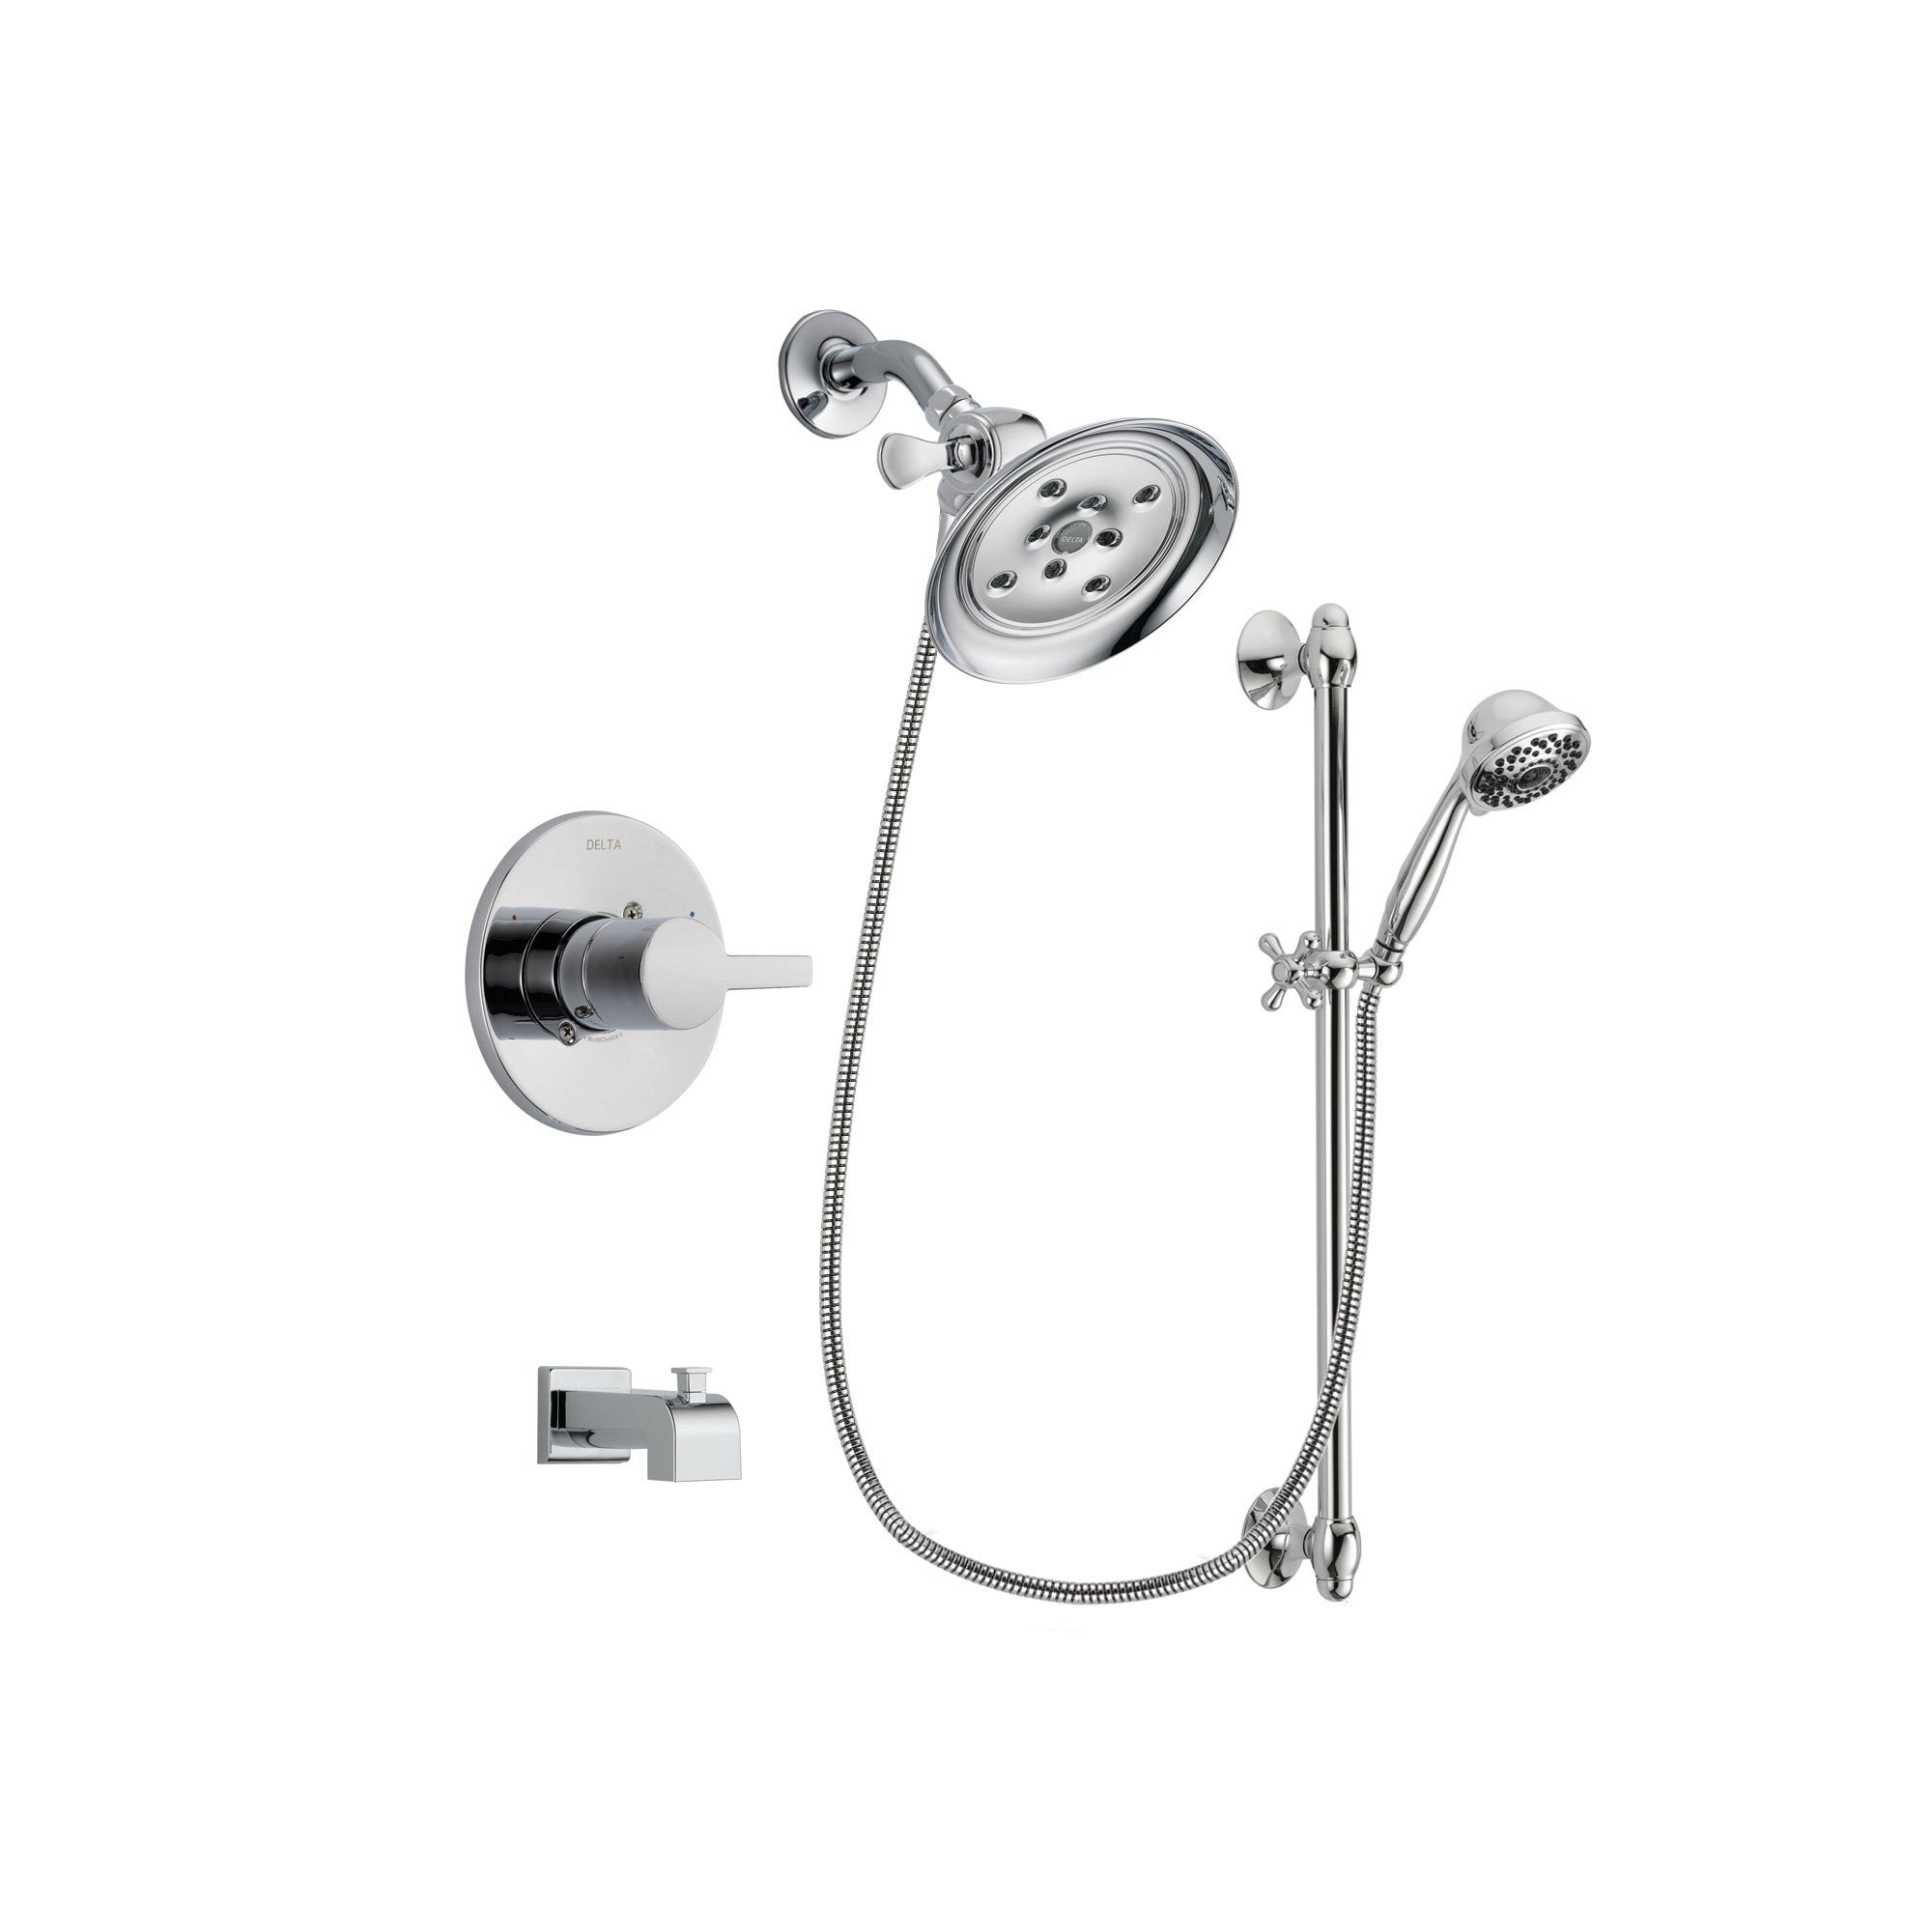 Delta Compel Chrome Tub and Shower Faucet System with Hand Shower DSP0643V